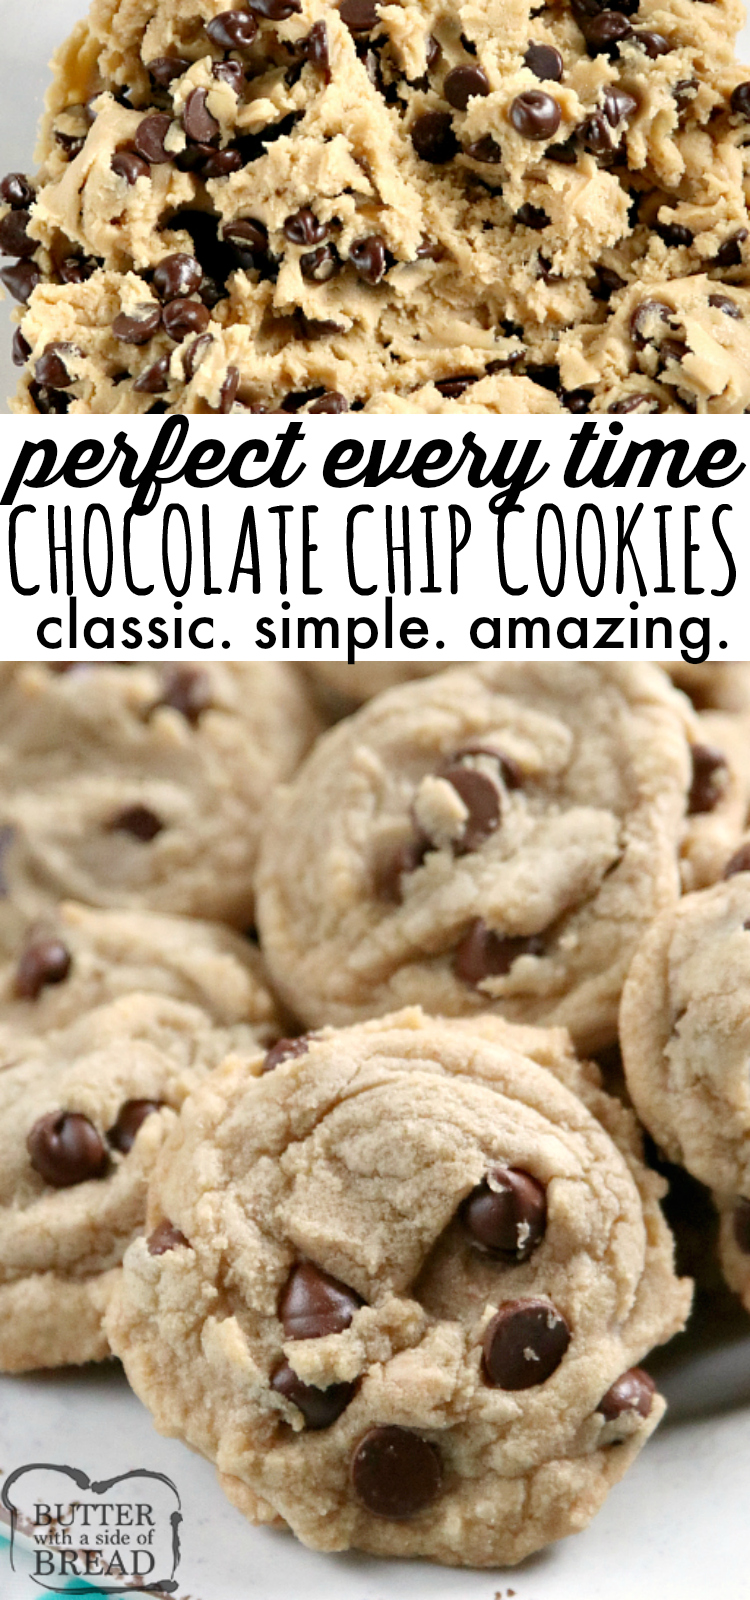 Homemade Chocolate Chip Cookies that are soft, loaded with chocolate chips and turn out perfectly every time! This easy chocolate chip cookie recipe is made with butter (no shortening) and other basic ingredients and no chilling is required.